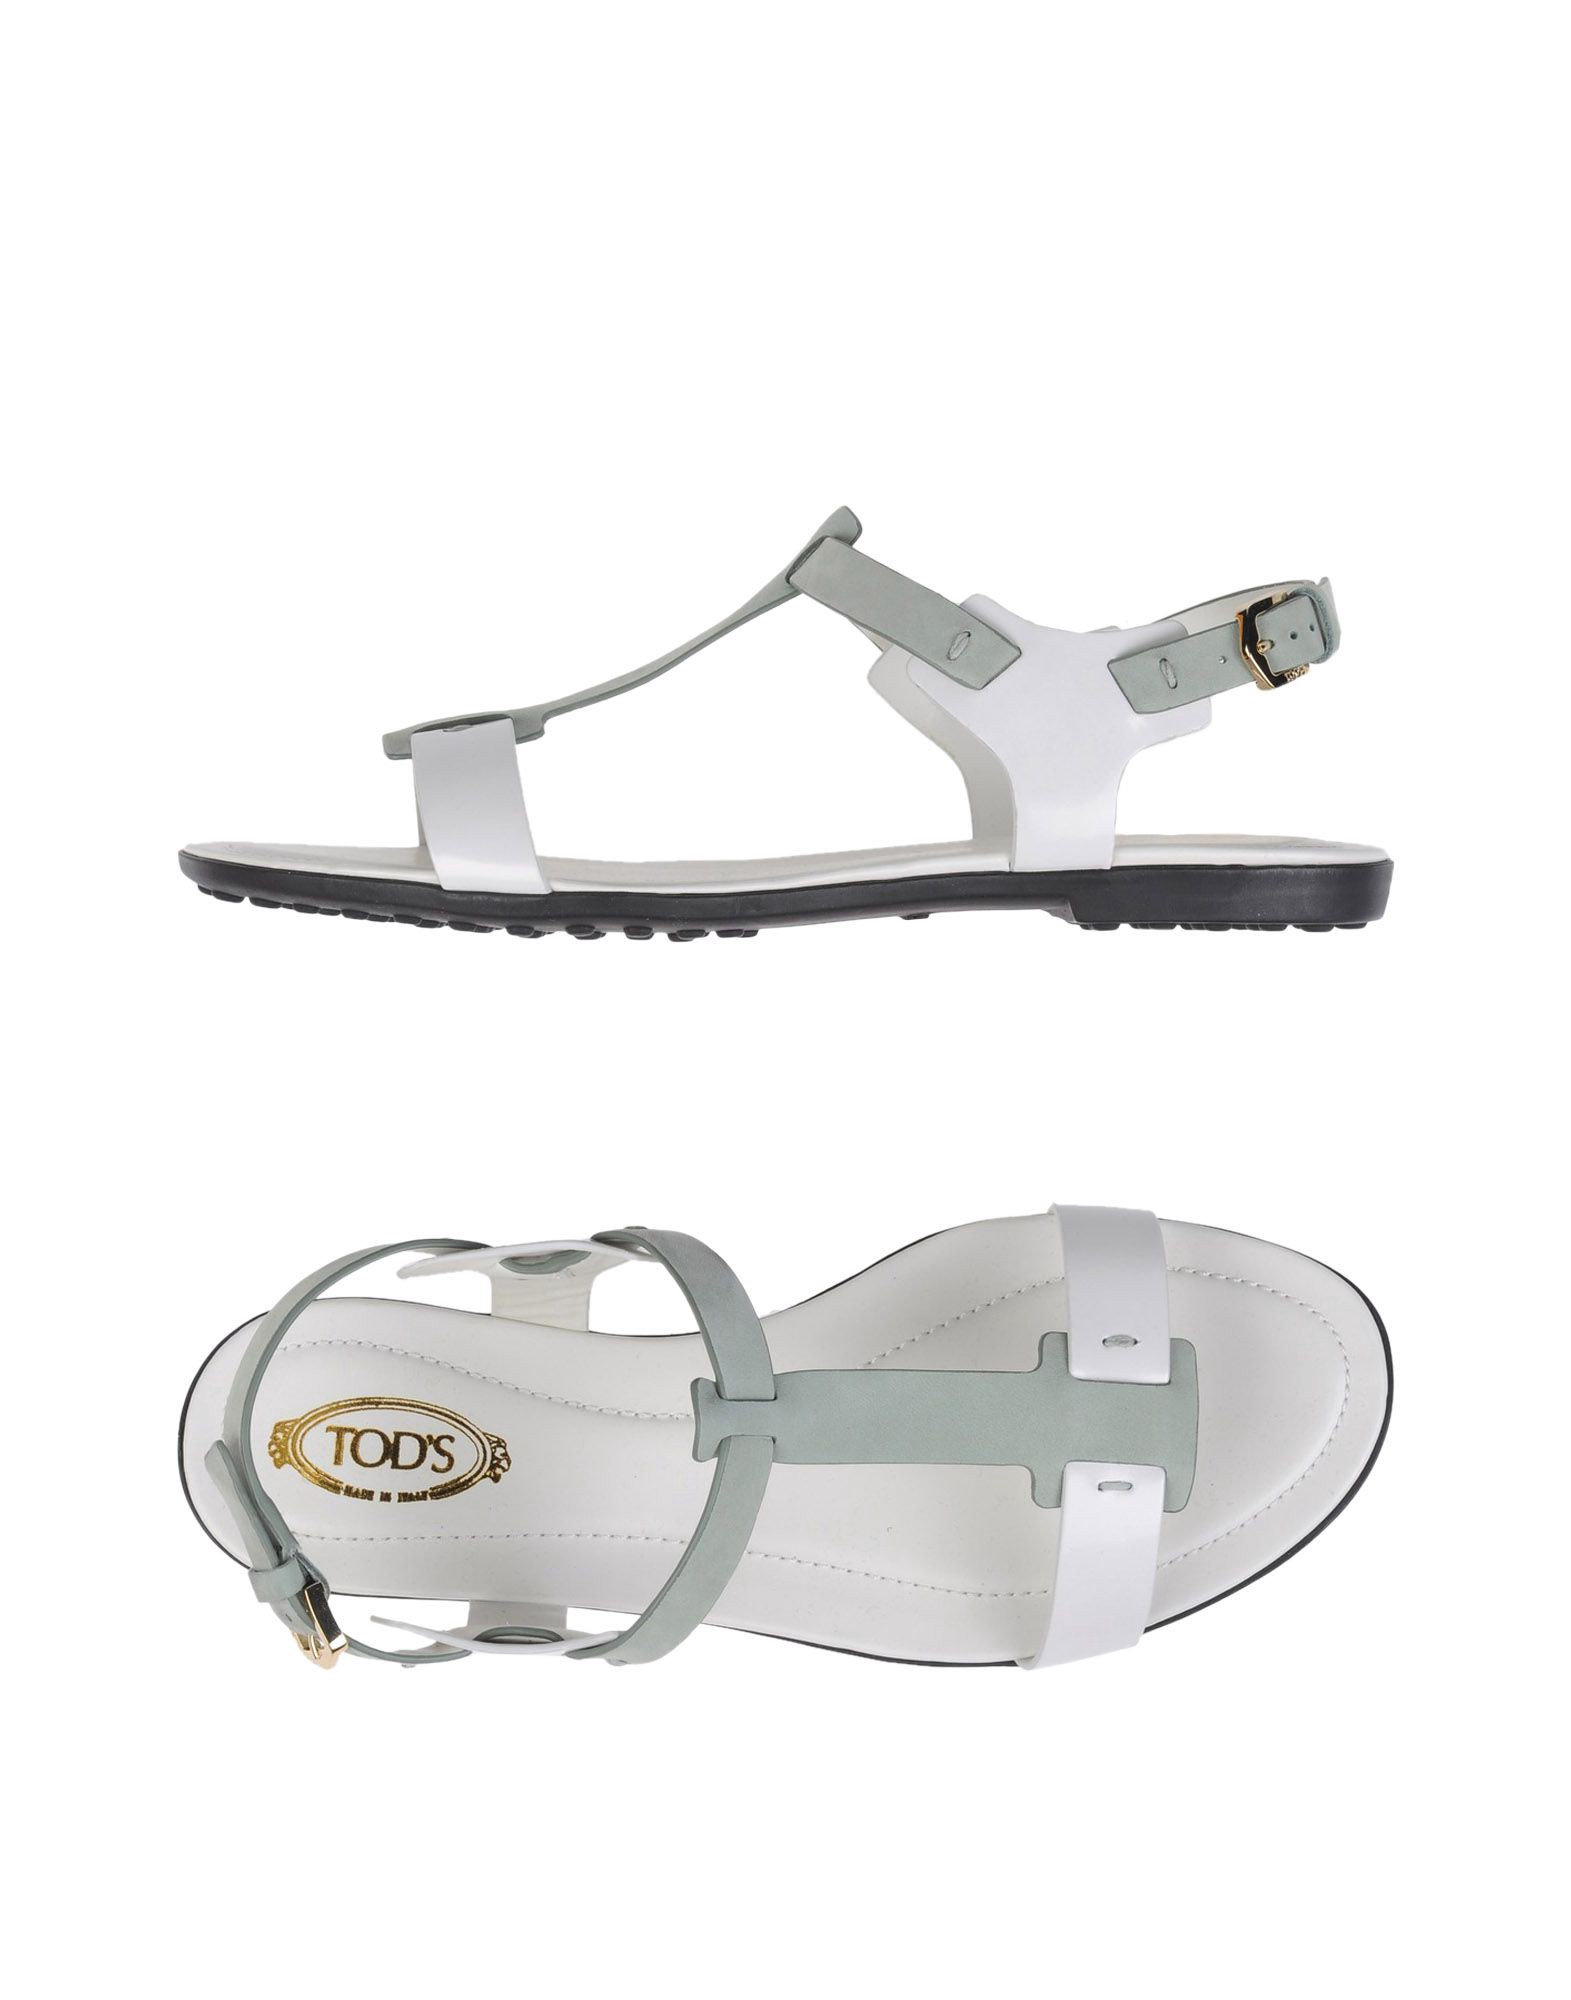 TOD'S Sandals at SPRING